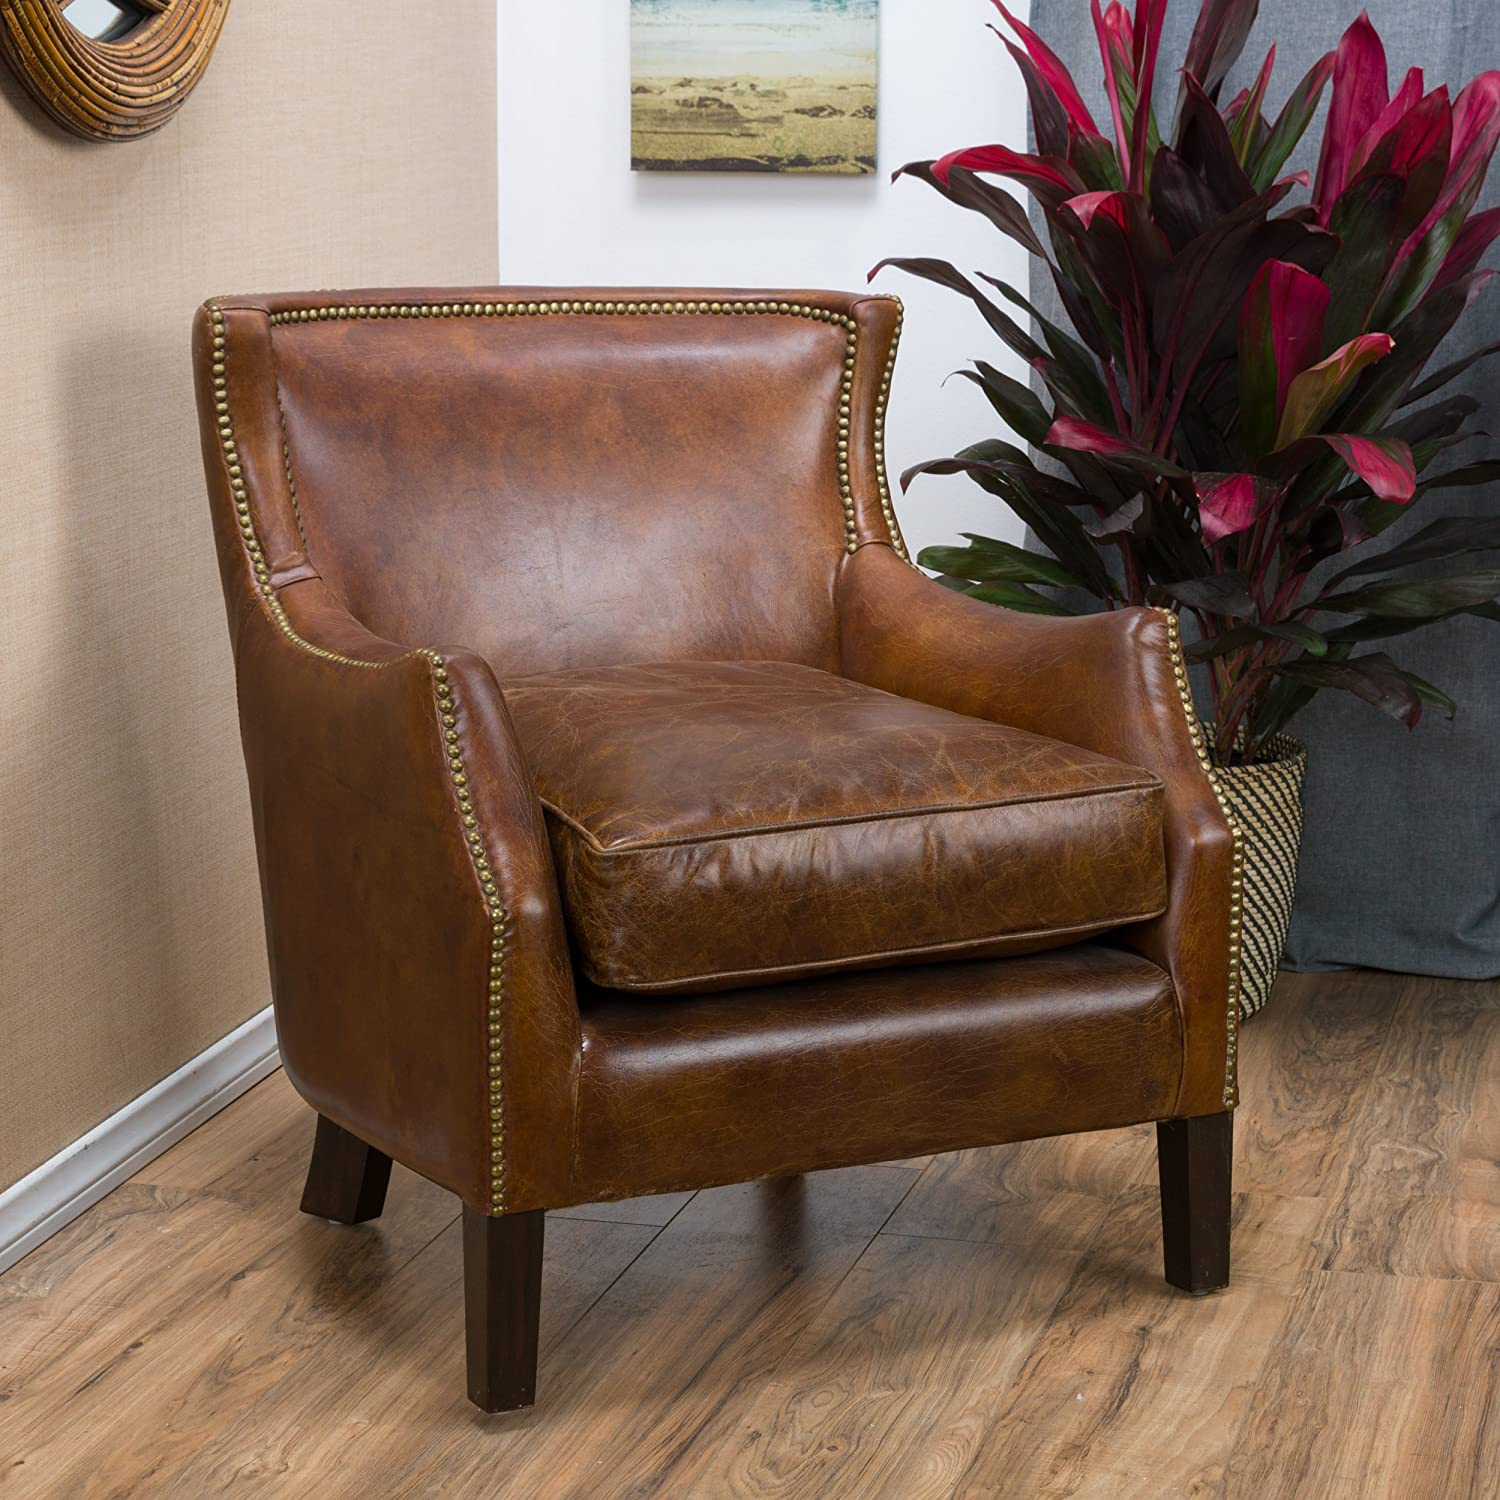 Amazon.com: Tiller Top Grain Vintage Design Brown Leather Club Chair:  Kitchen & Dining